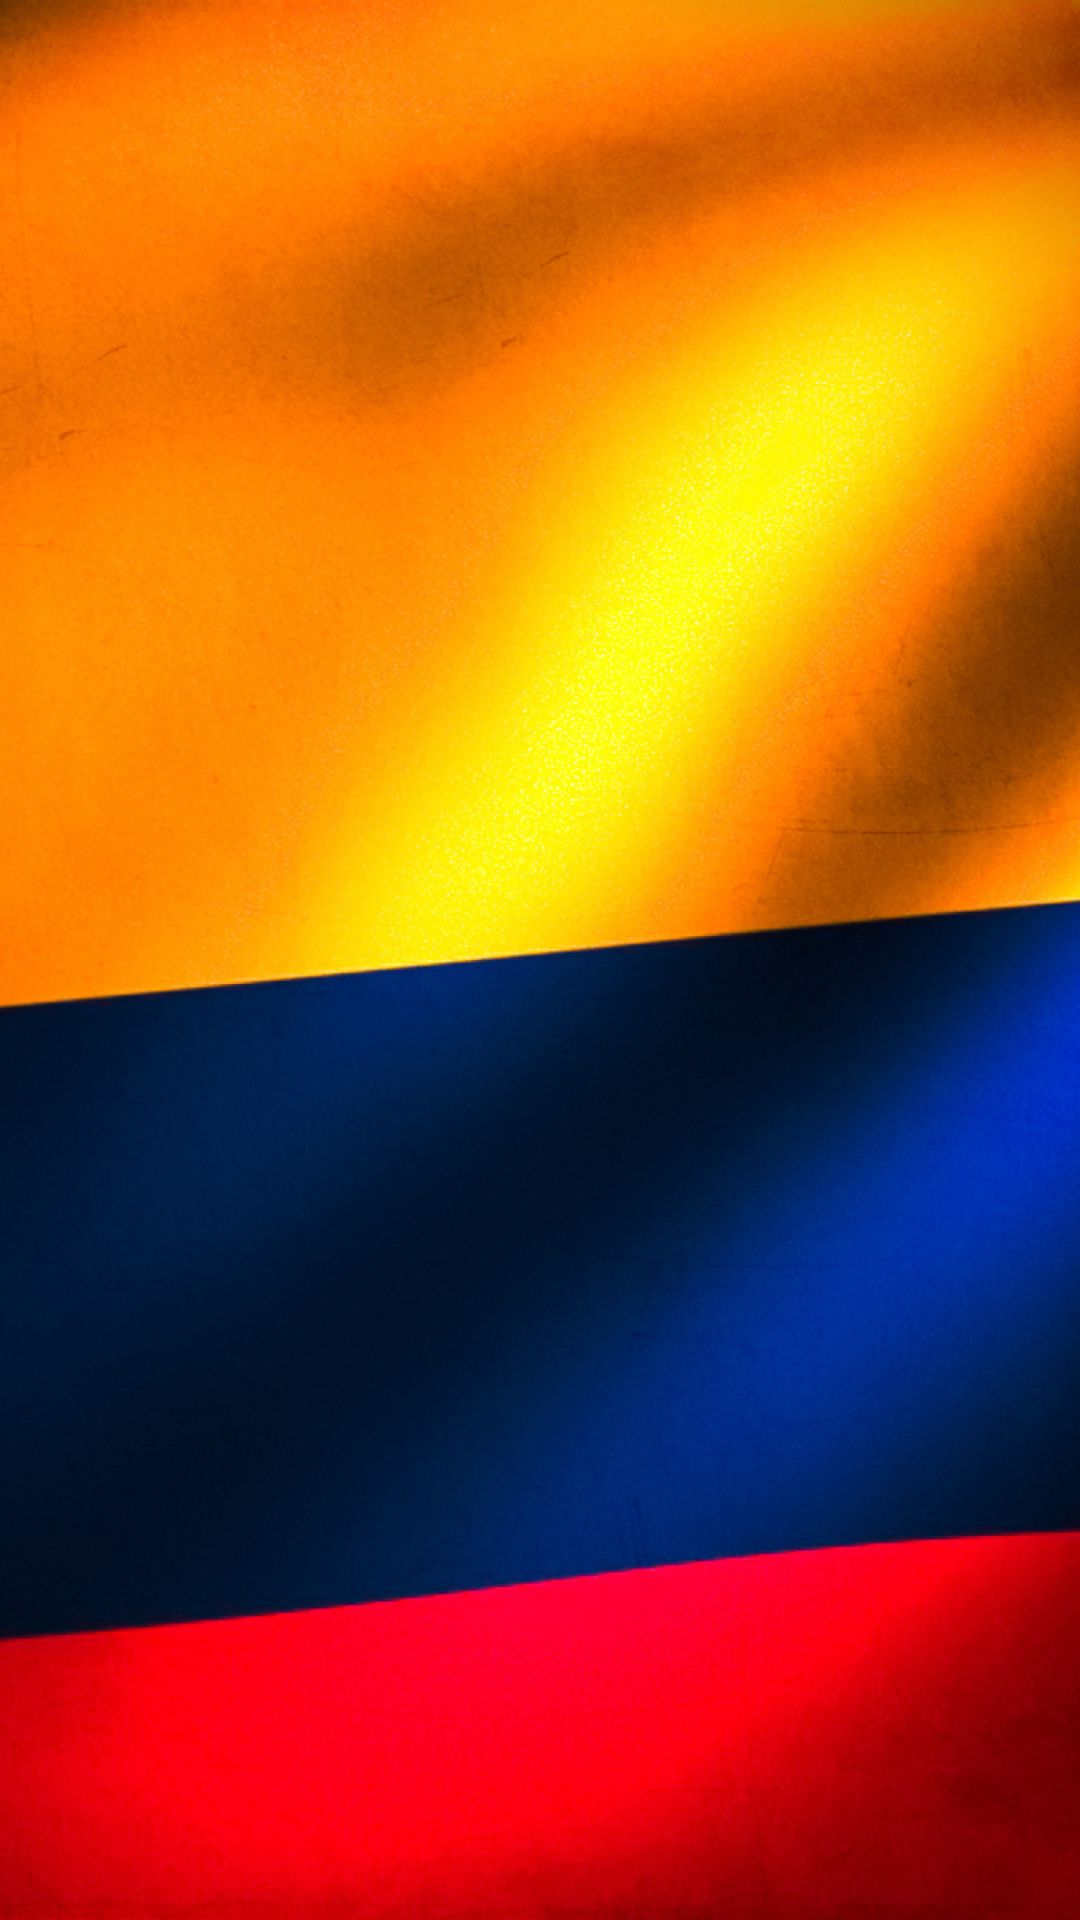 1080x1920 Colombia flag iphone 6 hd photos   iPhone Wallpapers